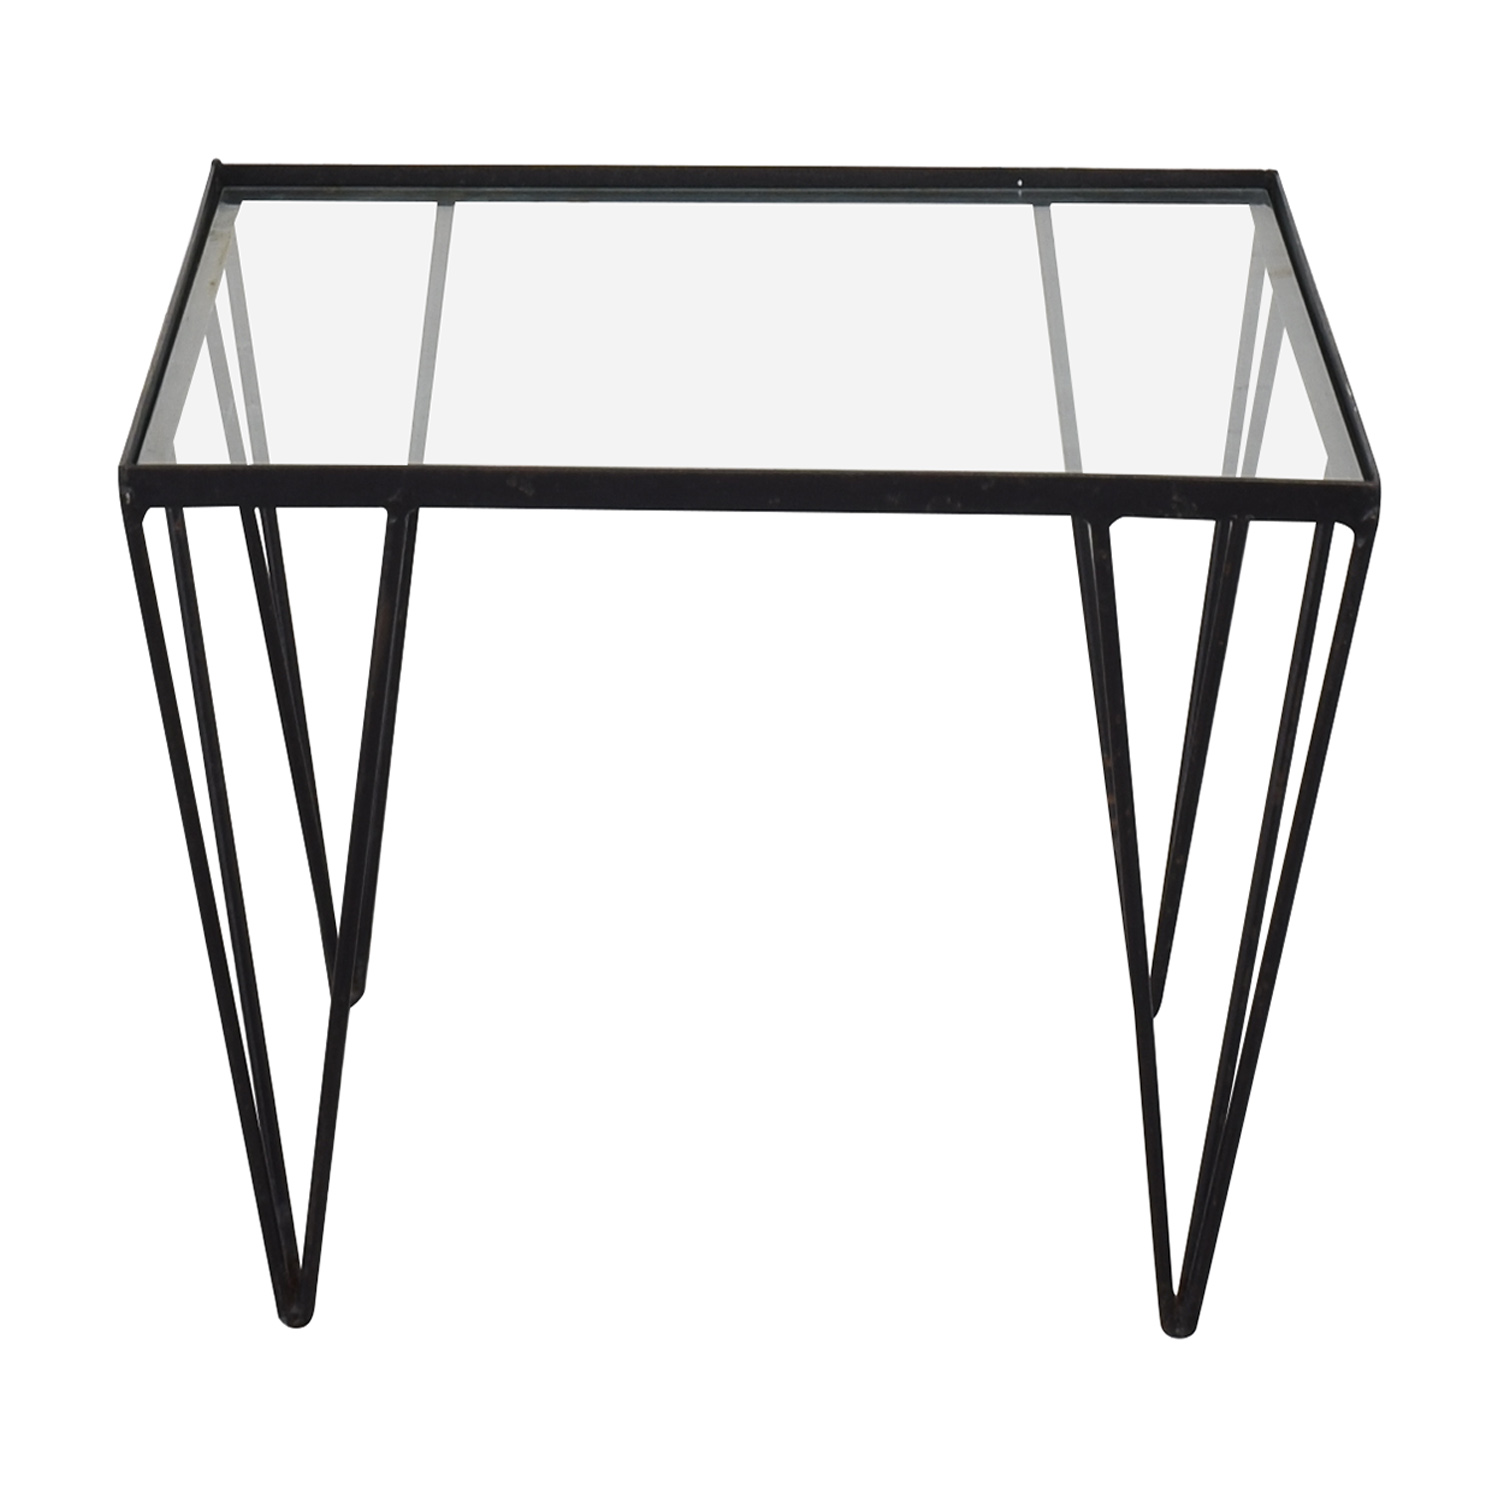 Vintage Iron Glass Table